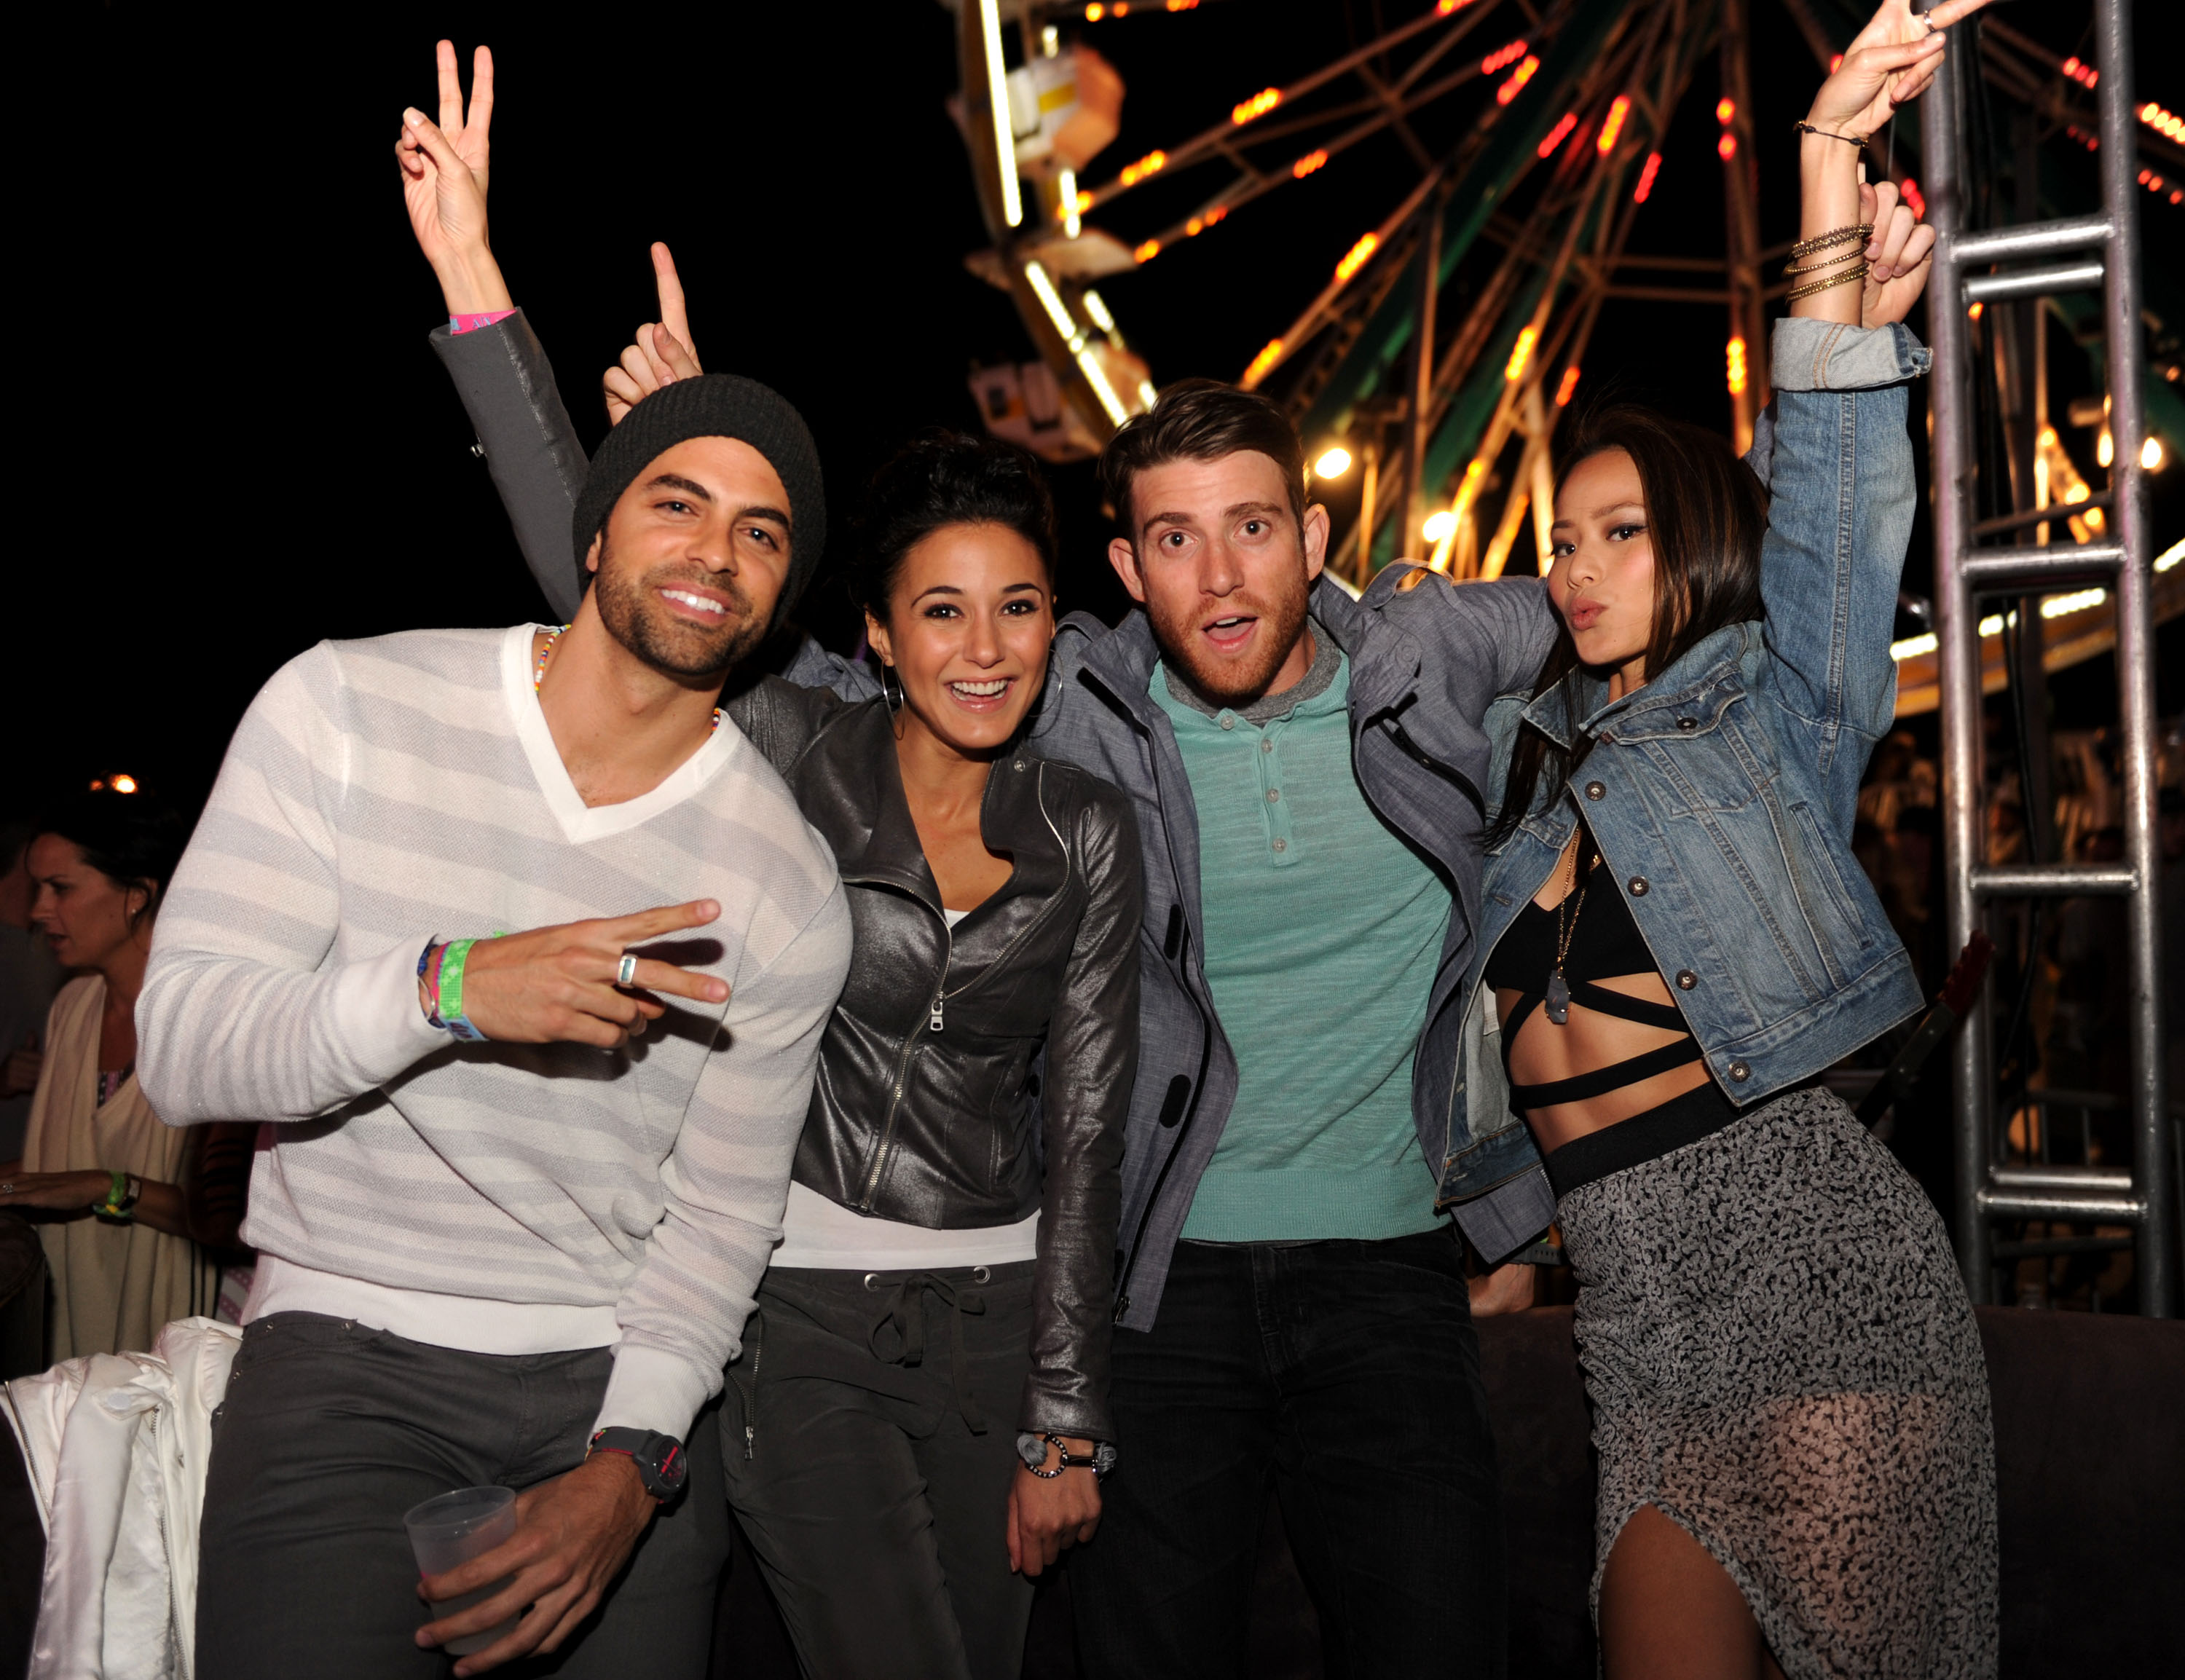 Emmanuelle Chriqui looked tough in a leather jacket, and Jamie Chung went laid-back in denim while getting goofy with friends at the A|X Armani Exchange Neon Carnival.  Photo courtesy of Seth Browarnik/WorldRedEye.com